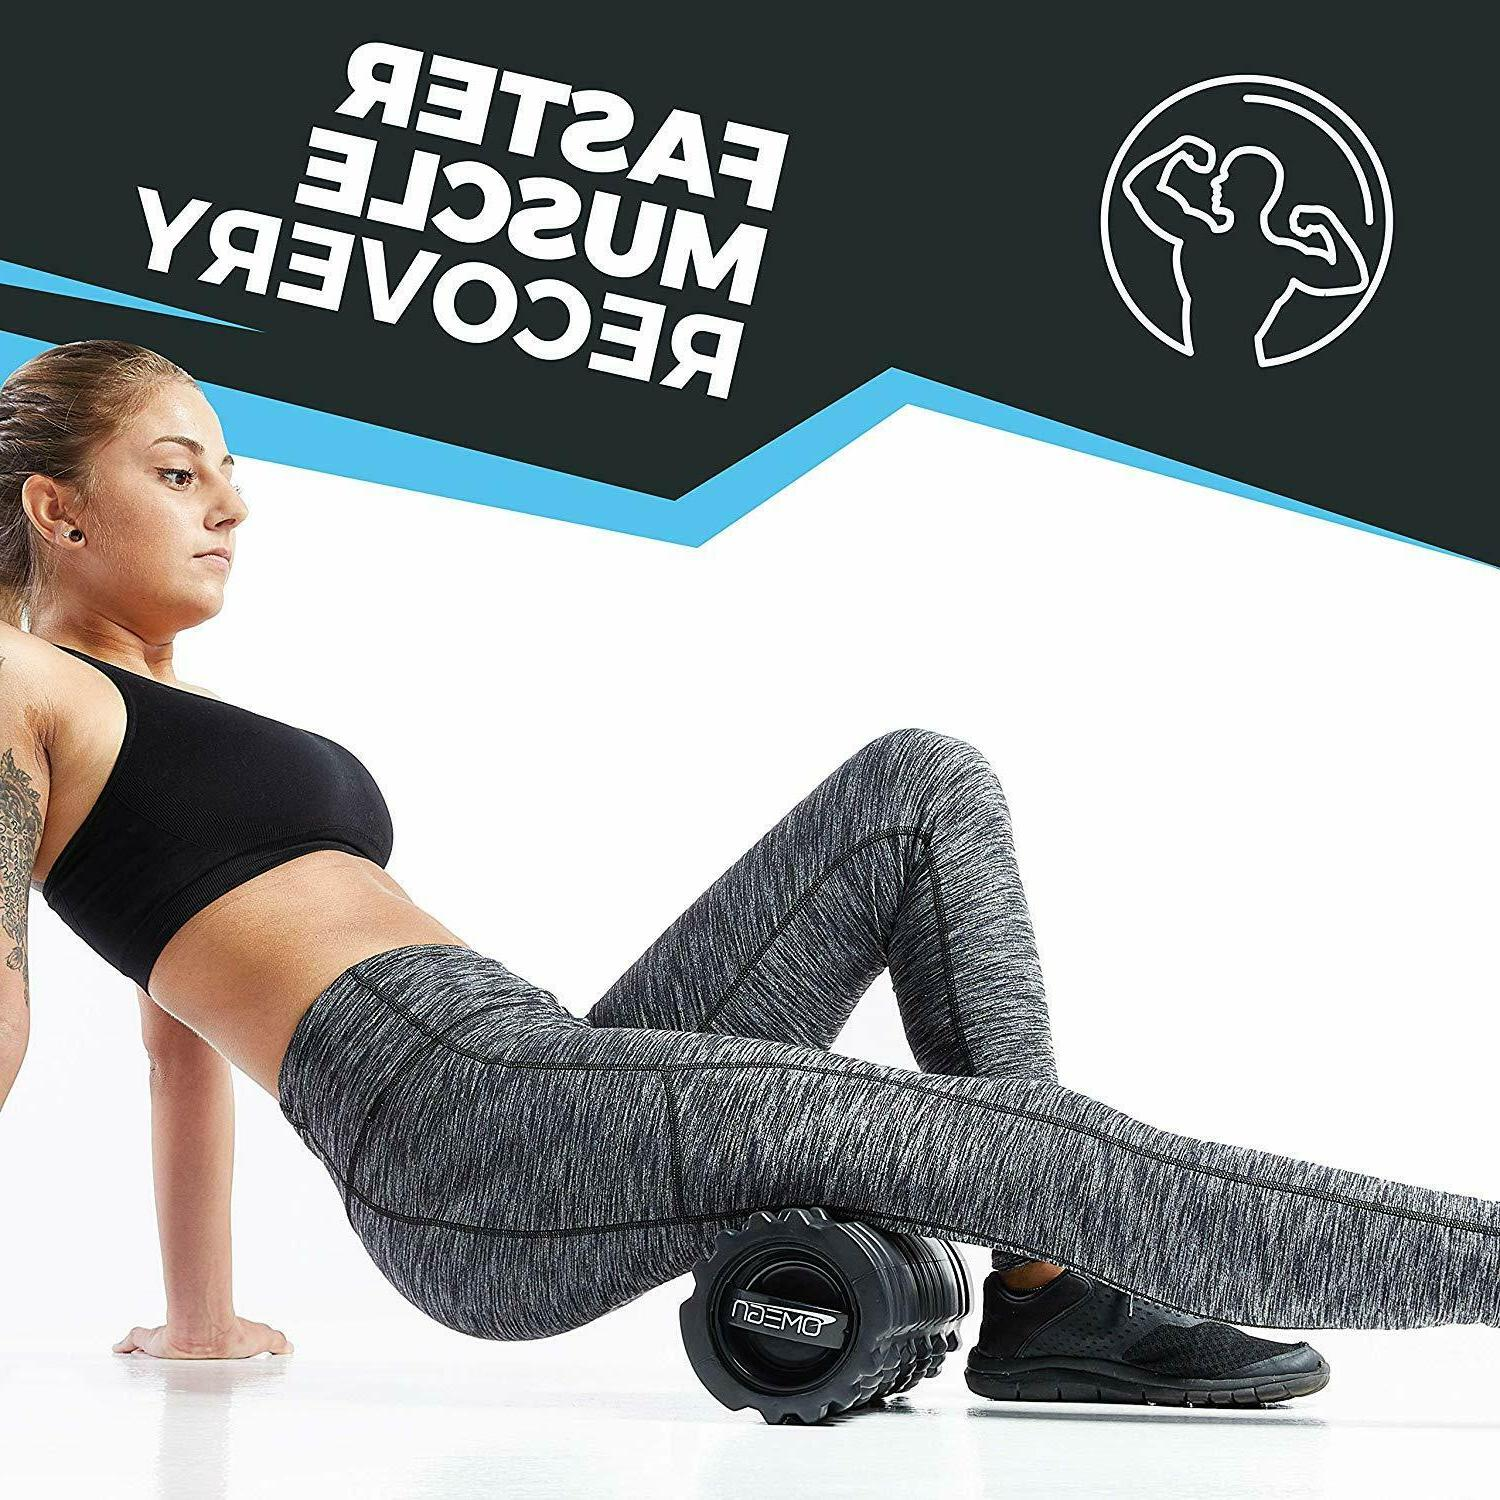 Vibrating Foam - Electric Tissue Massage, Post Workout Recovery